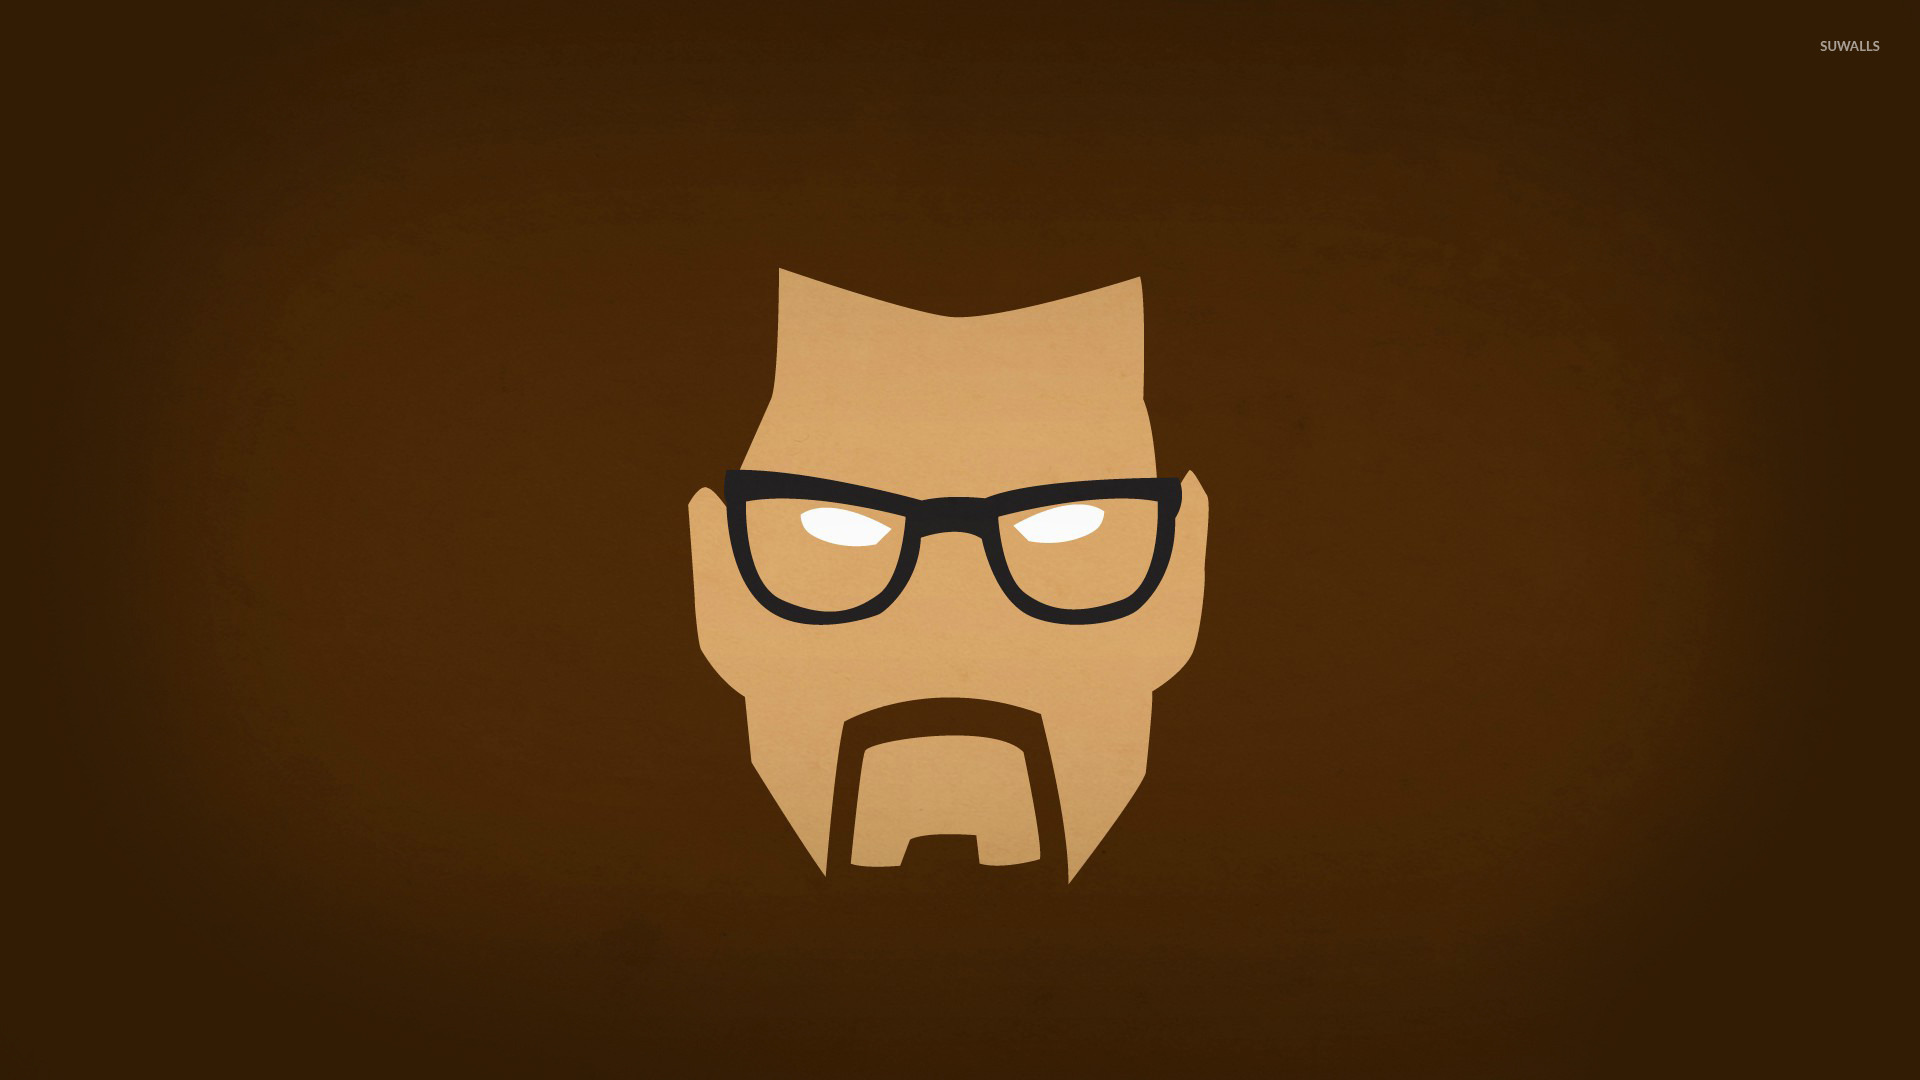 Gordon Freeman Half Life 2 3 Wallpaper Minimalistic